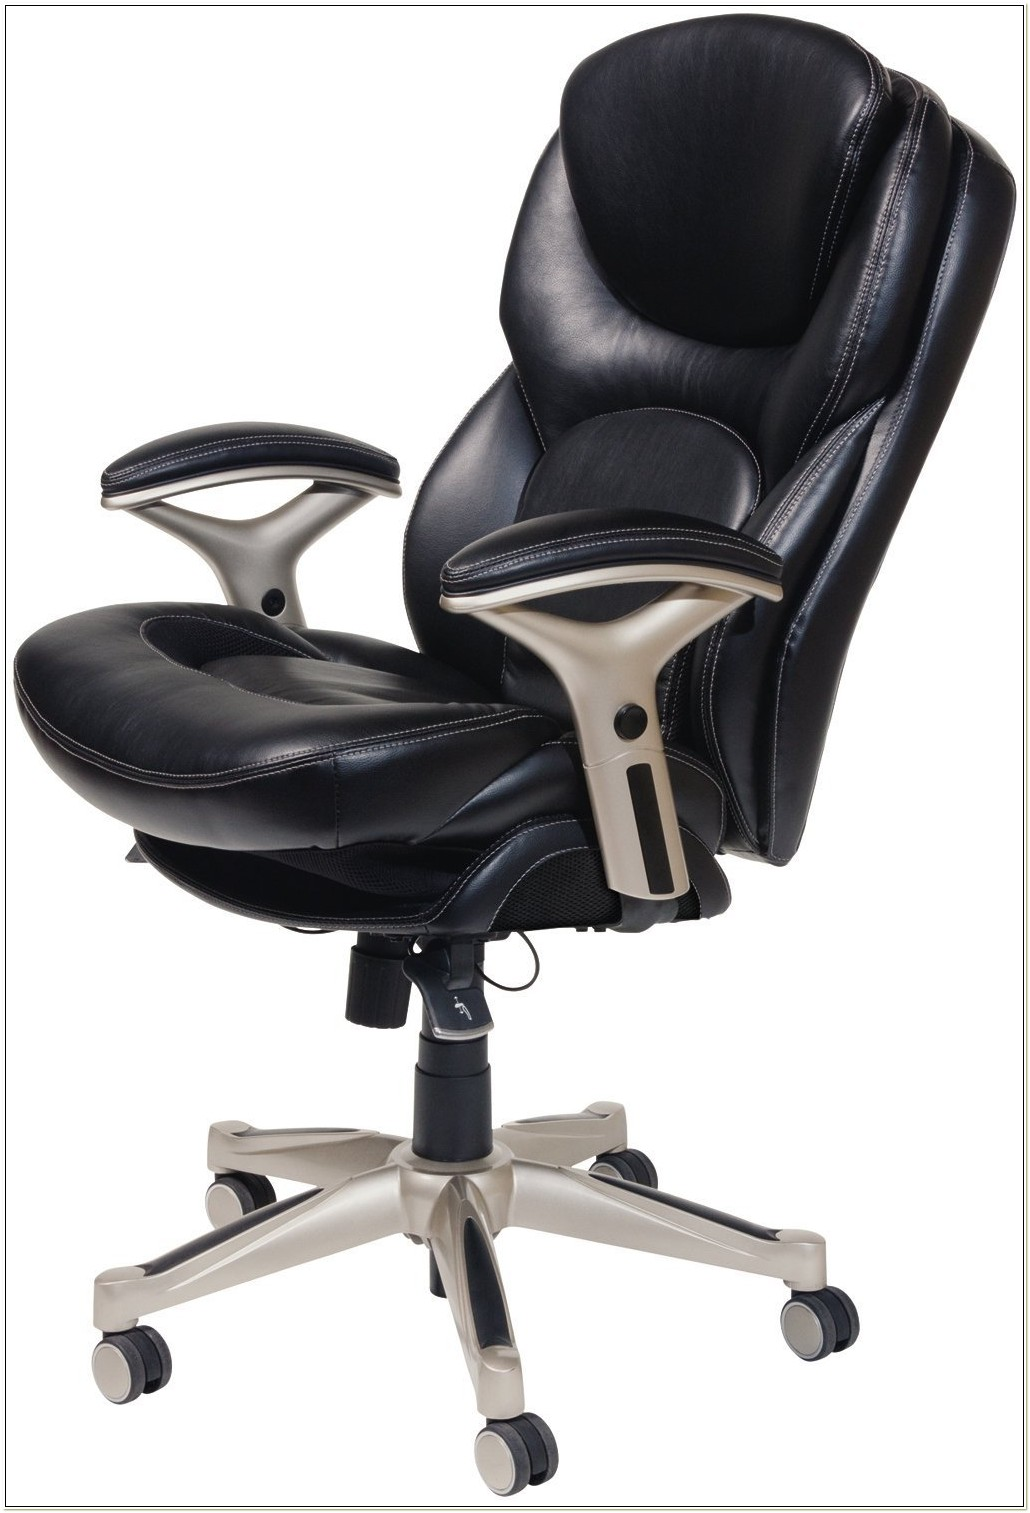 Serta Black Leather Office Chair